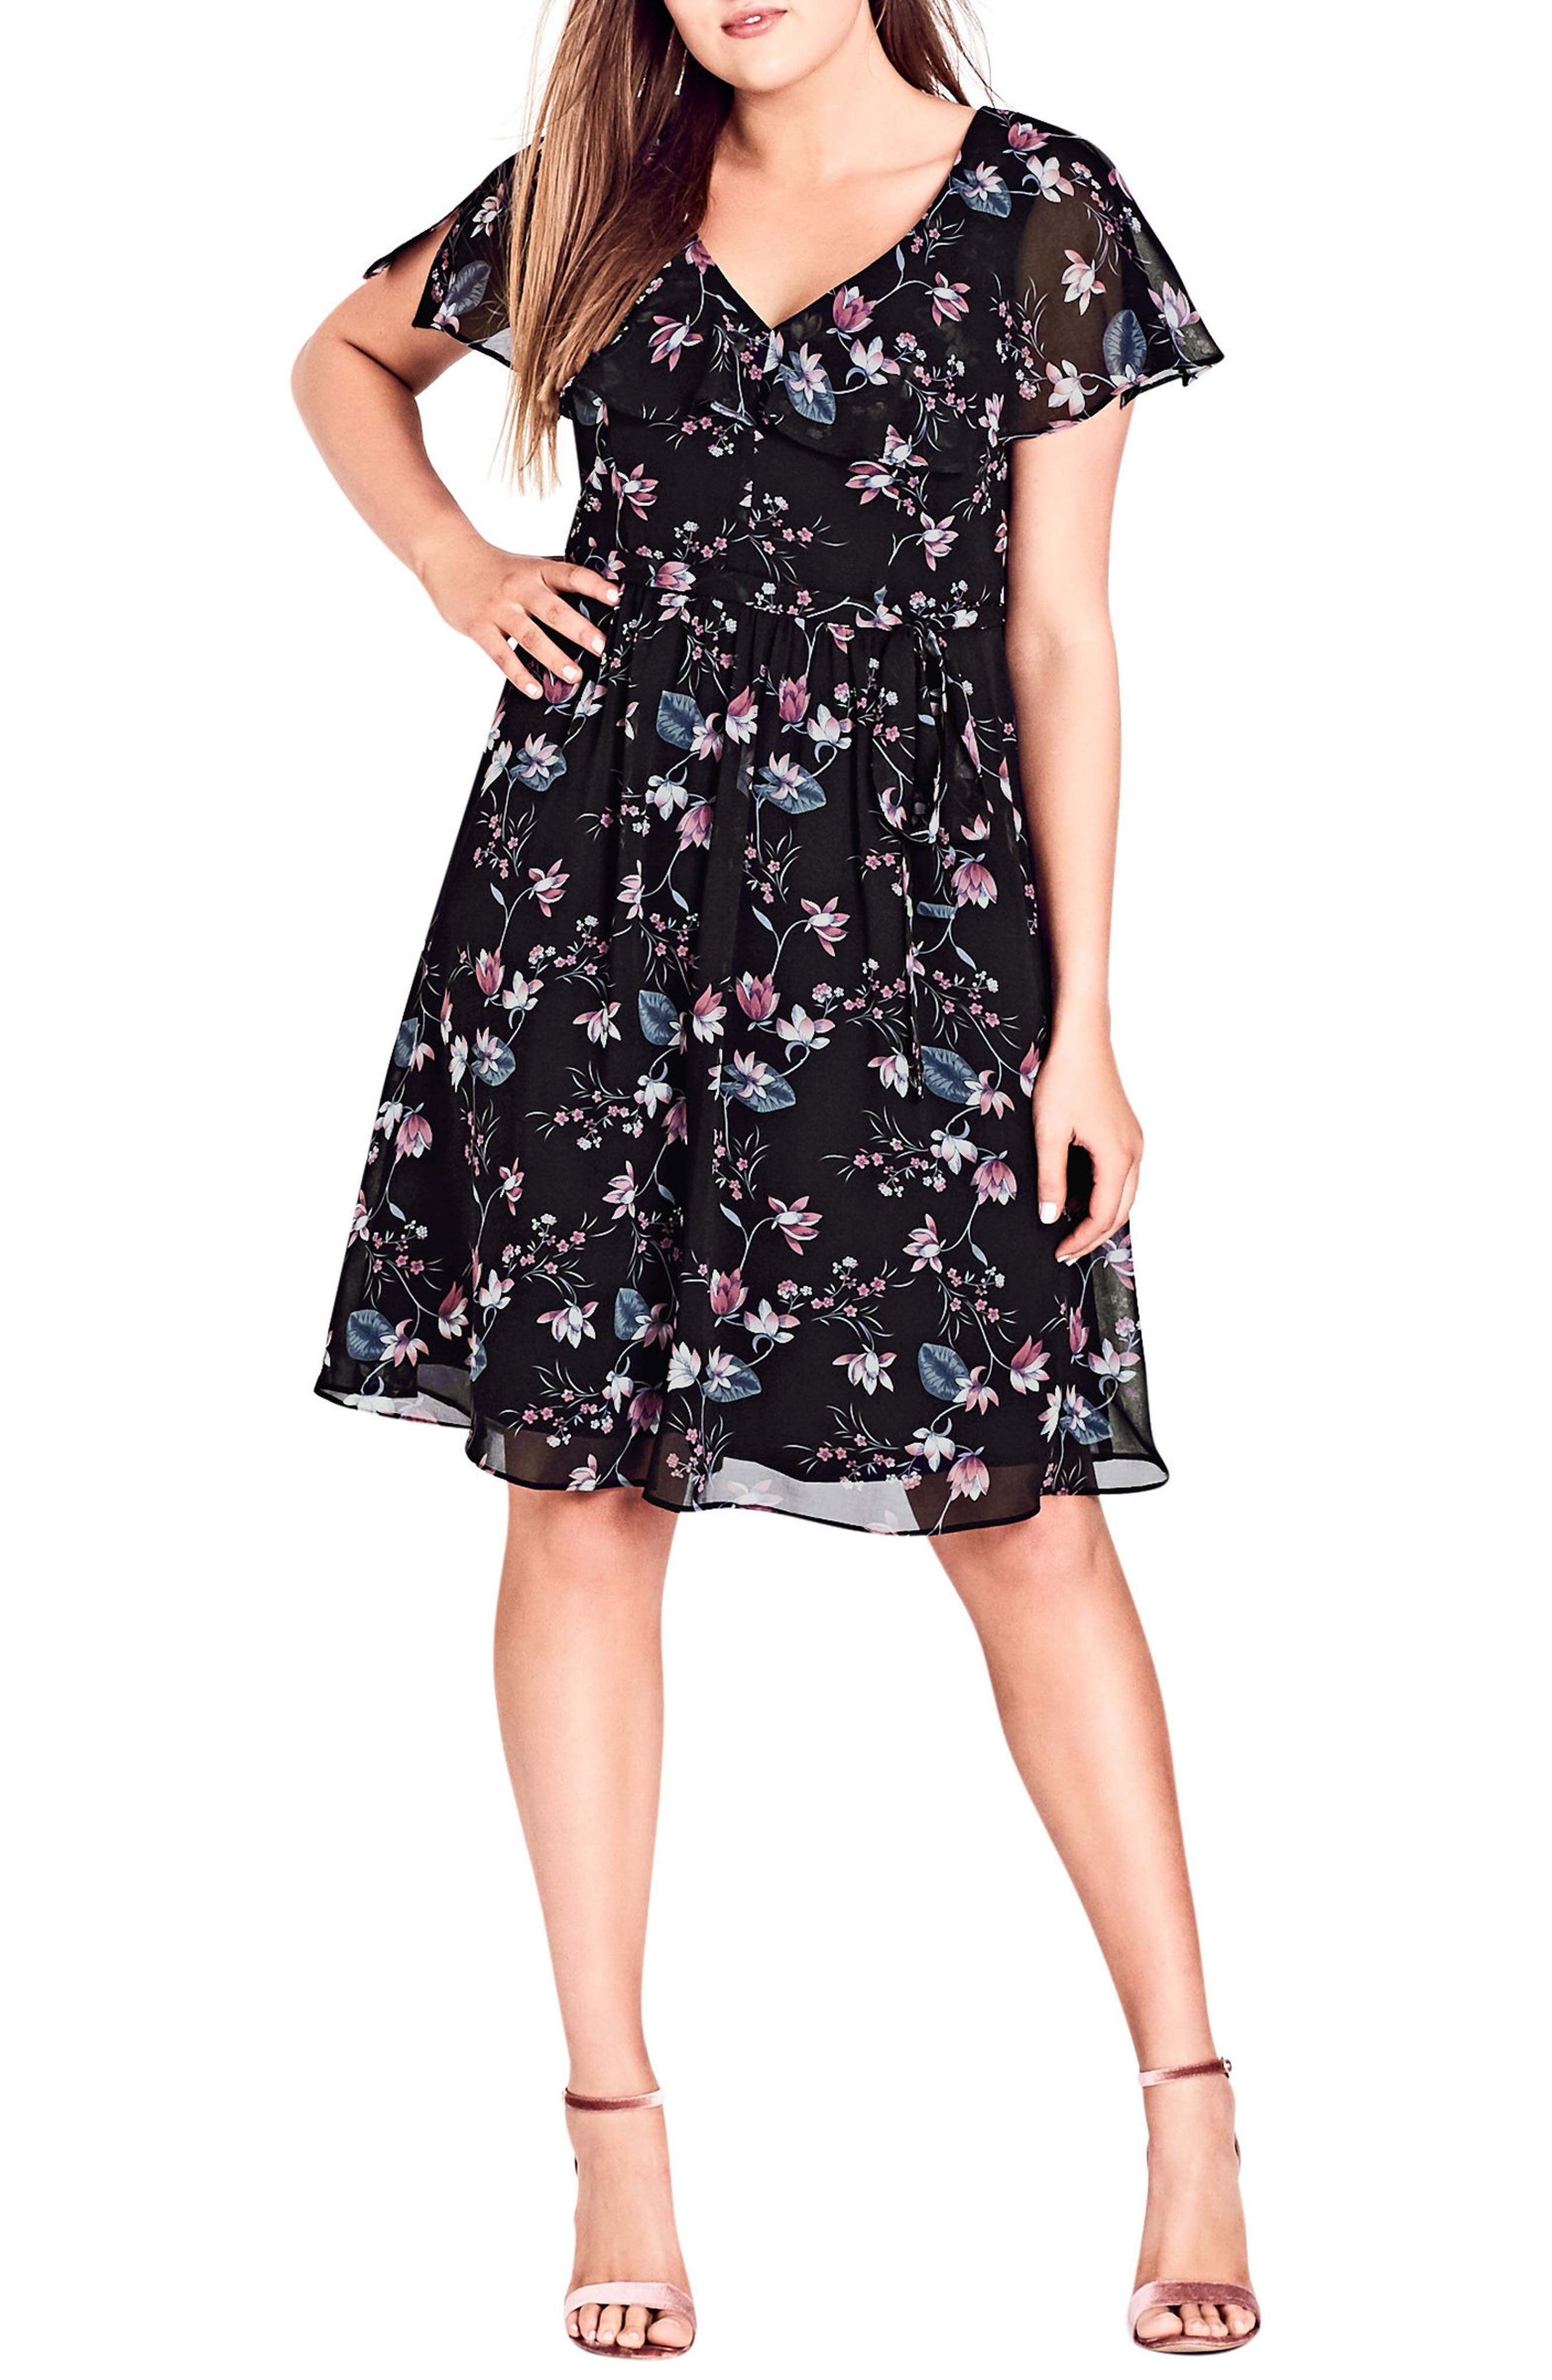 Sweet Jasmine Fit & Flare Dress,                             Main thumbnail 1, color,                             001